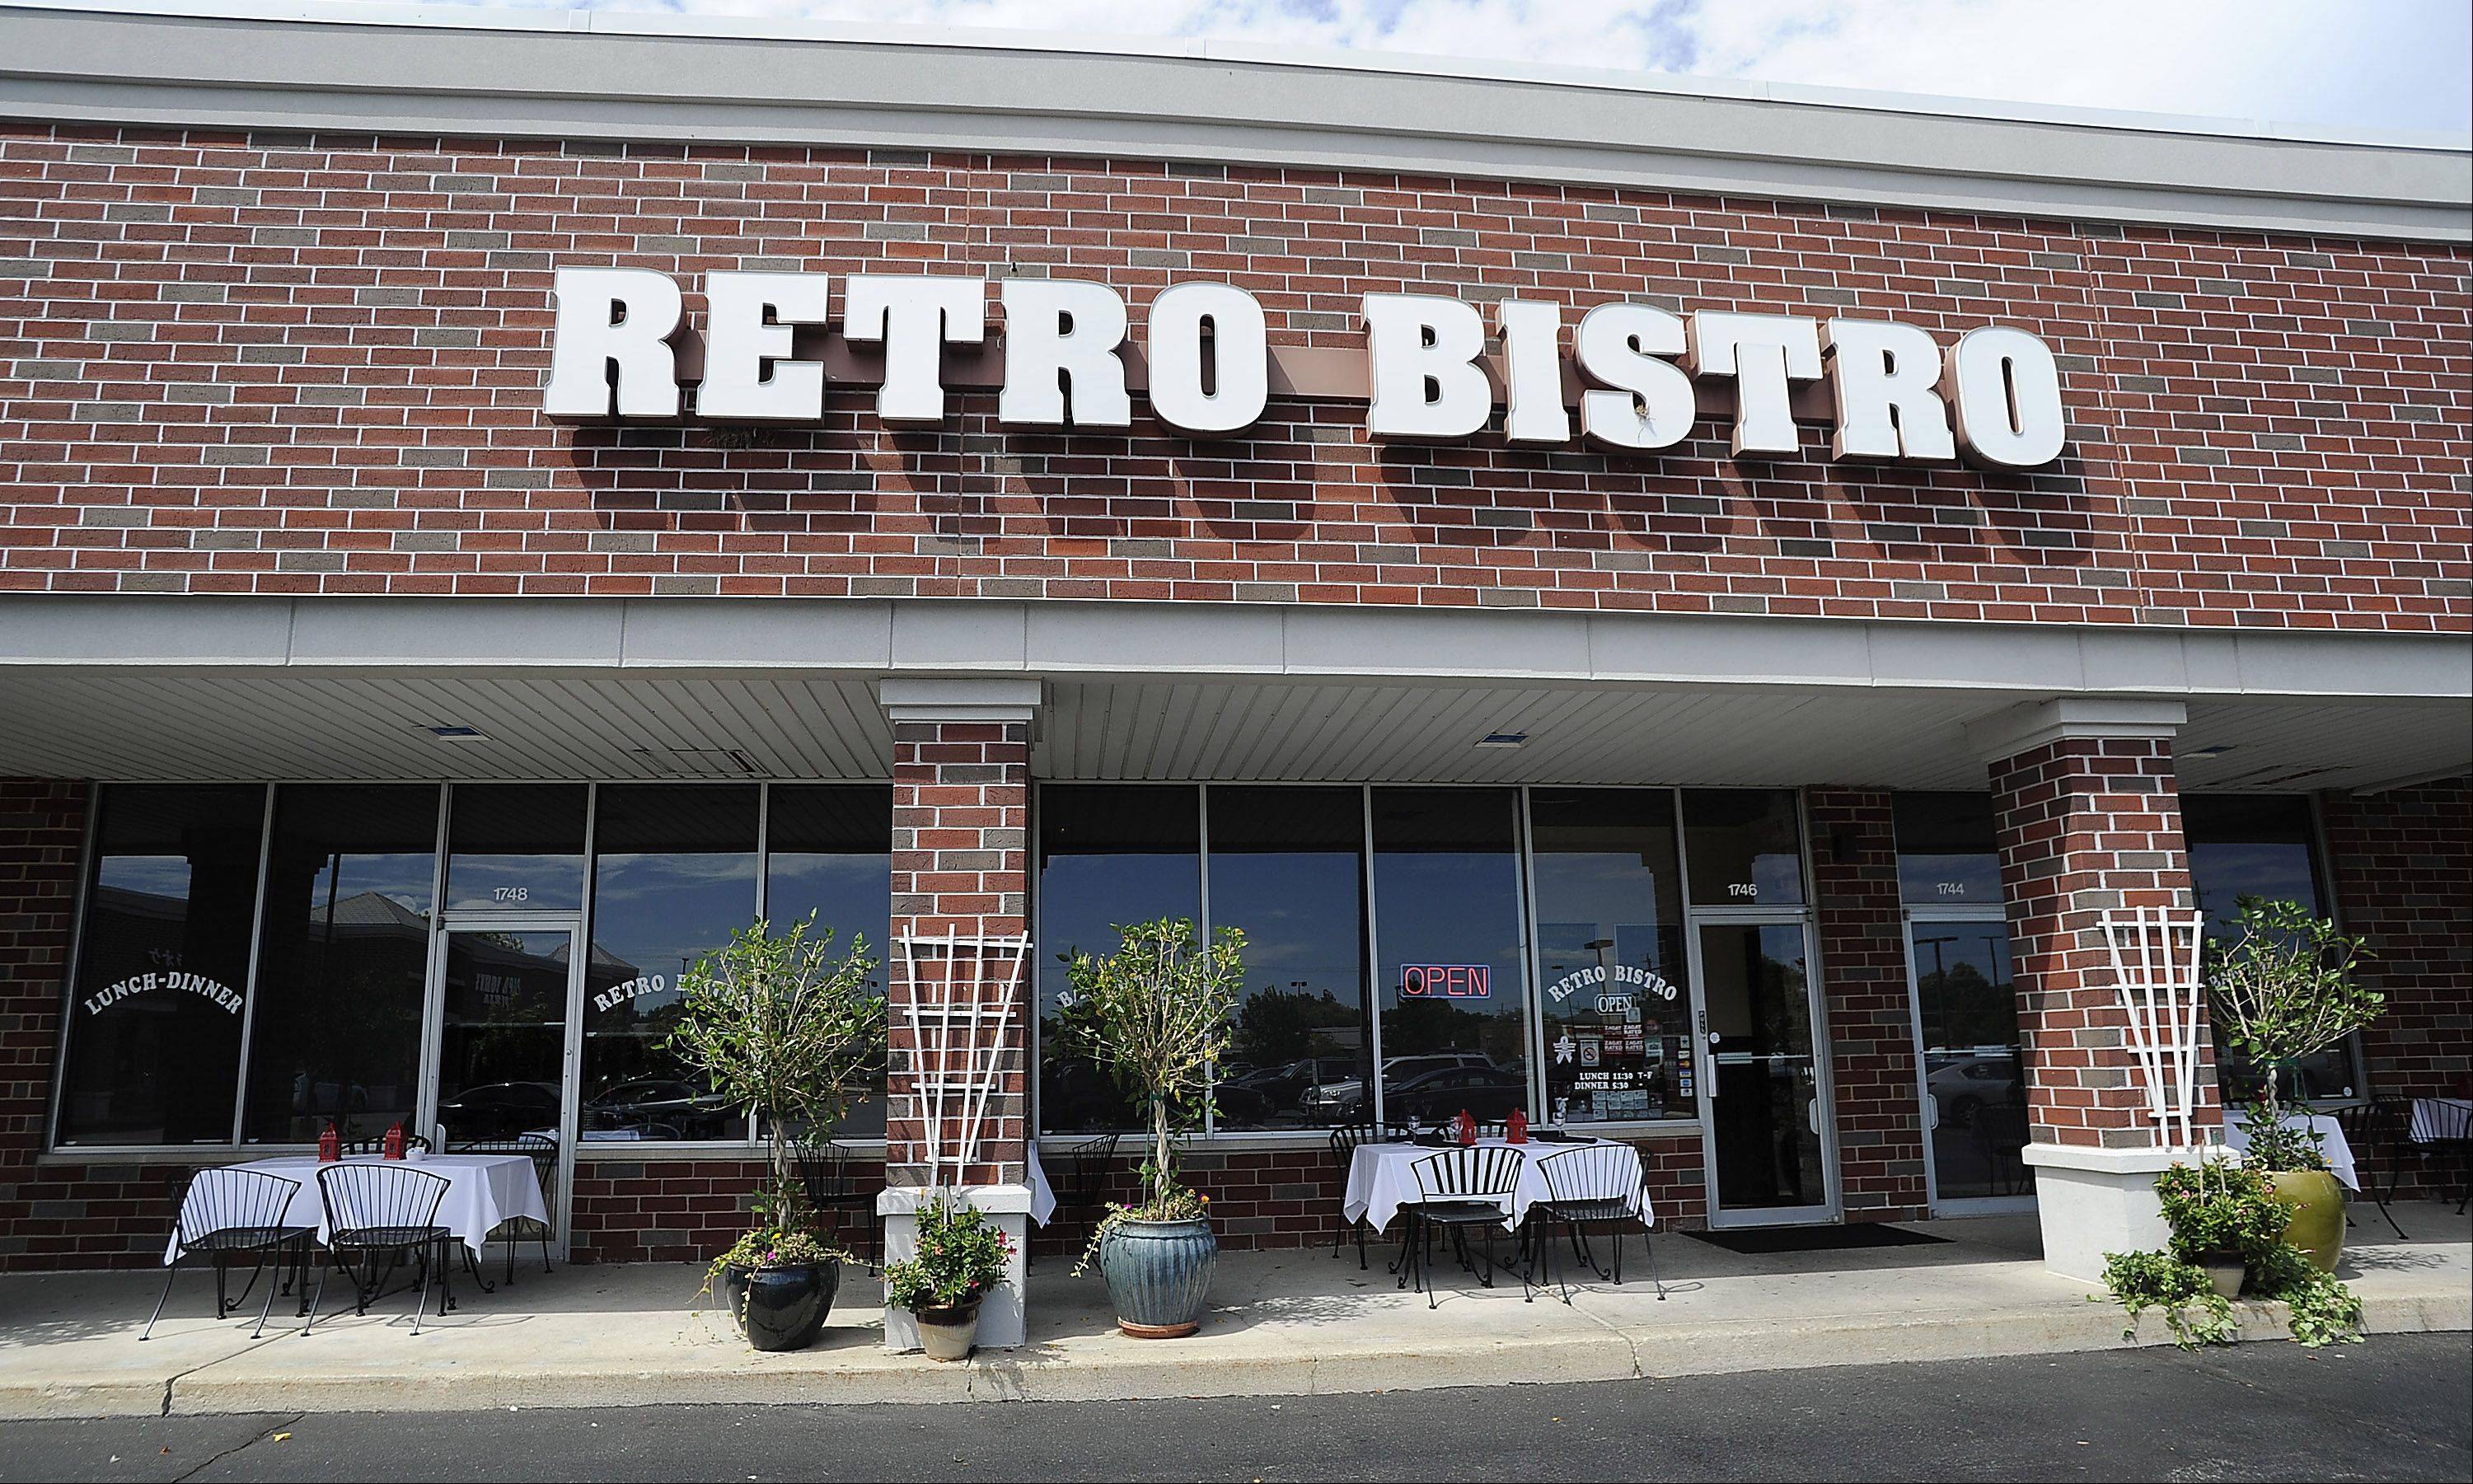 The Retro Bistro has operated in Mount Prospect for 23 years.